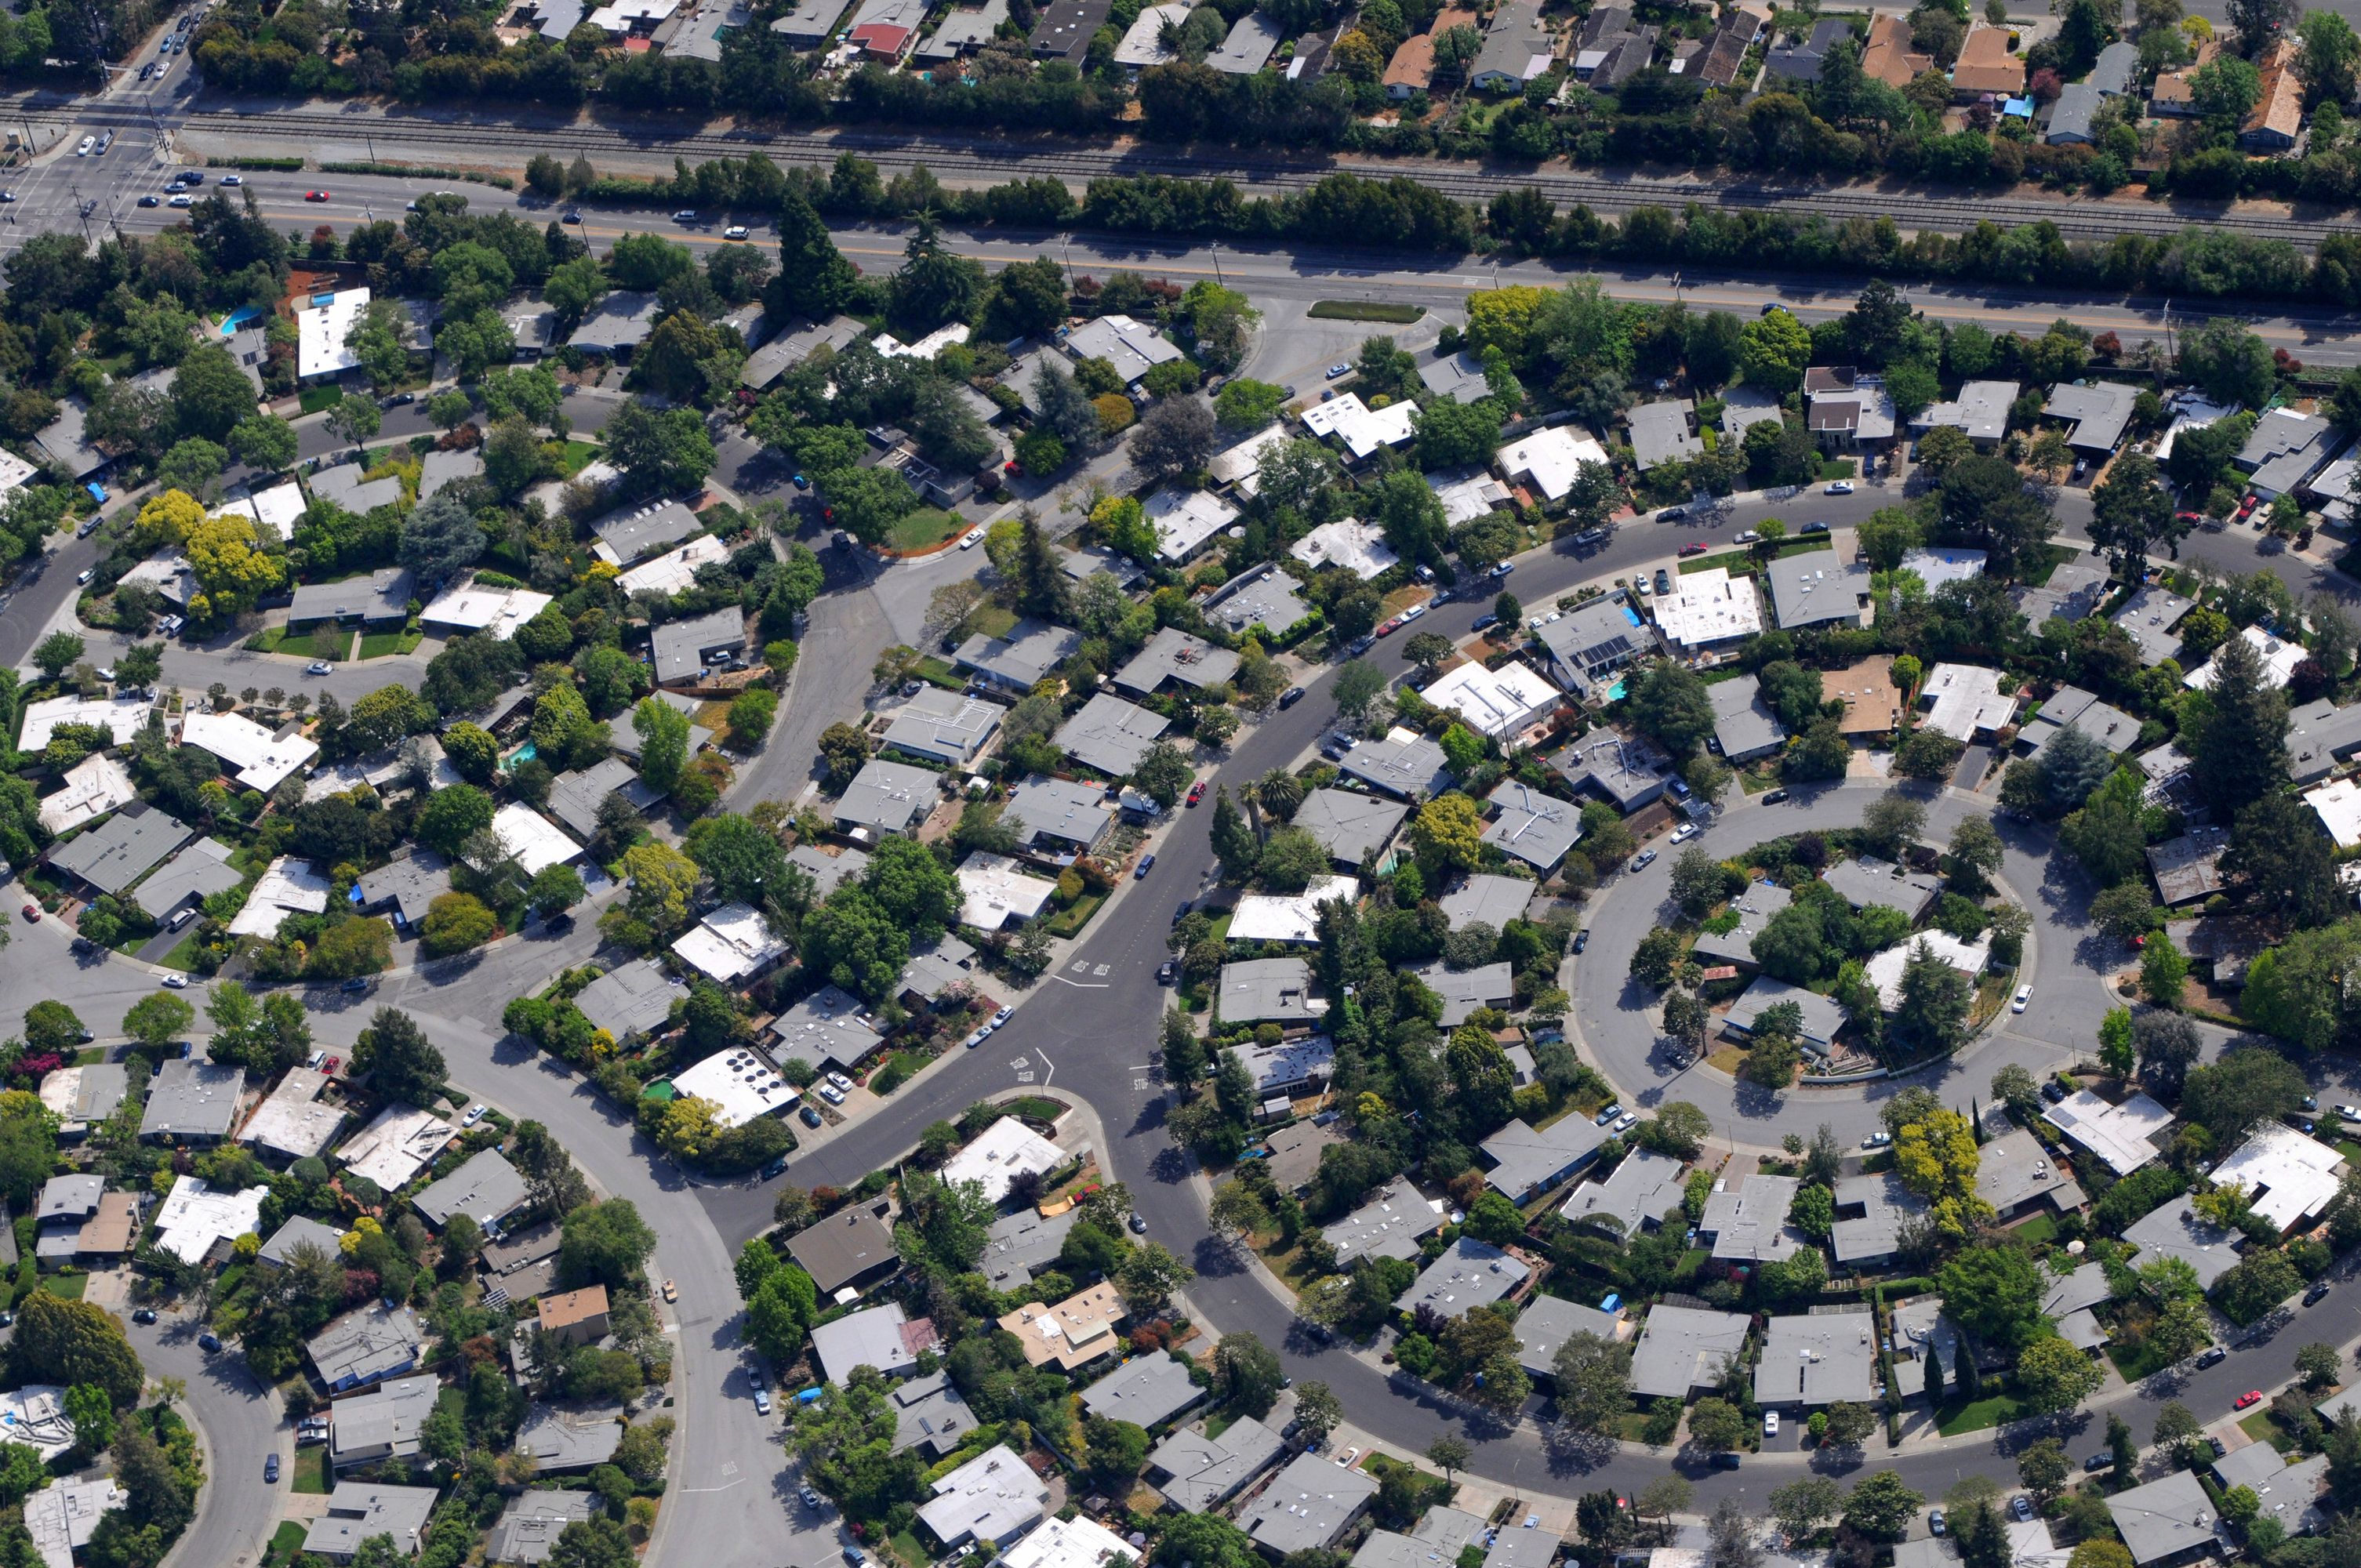 Neighborhood laid out in a circular pattern. Palo Alto, California, USA.